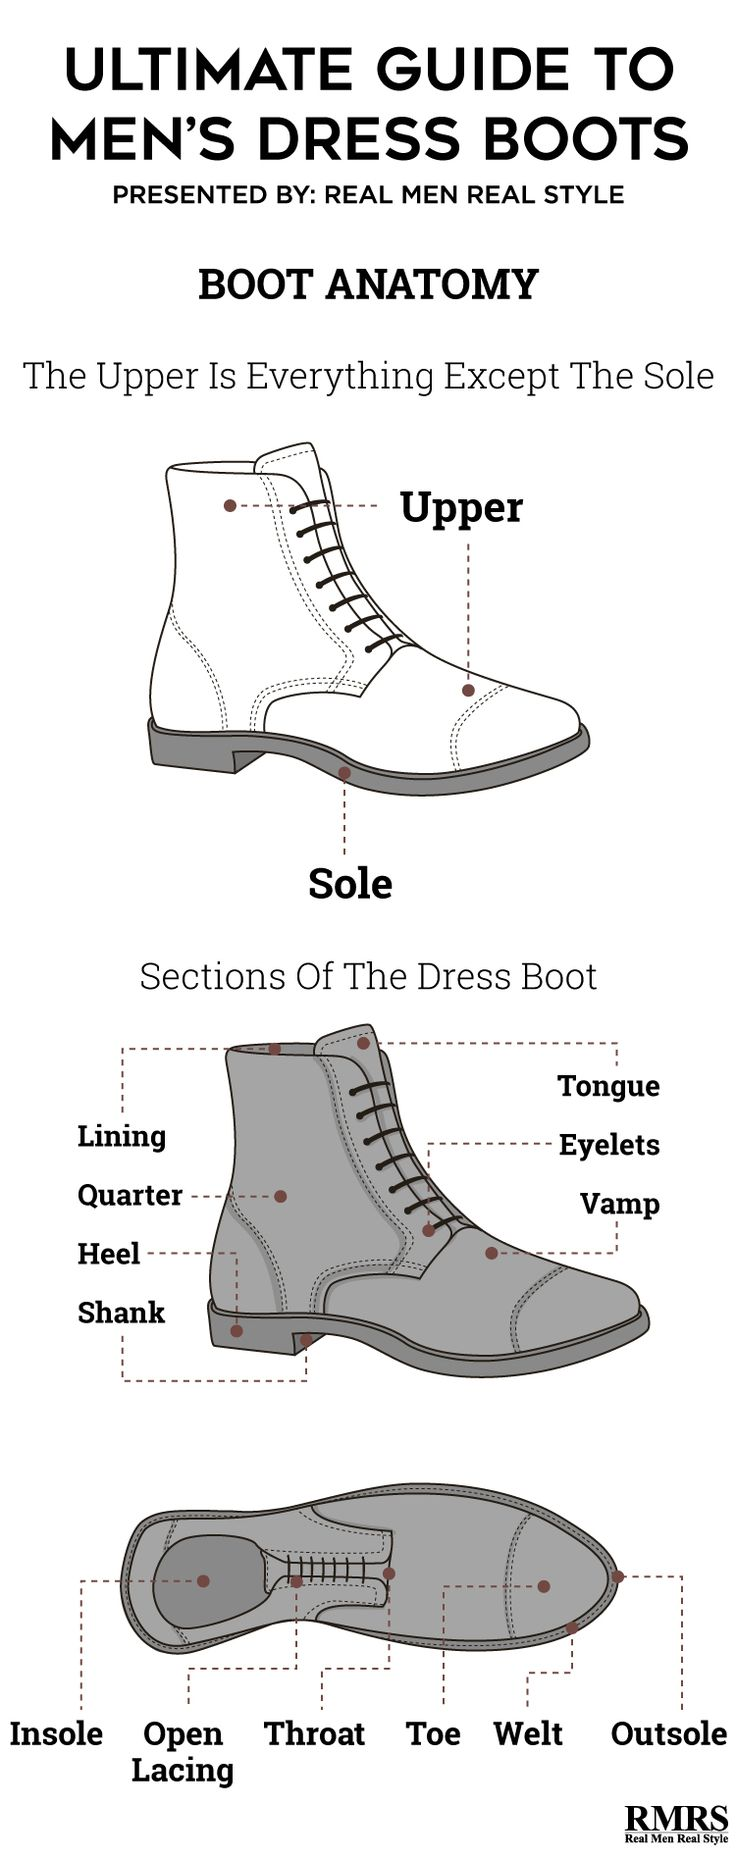 Most of these parts reflect the type of boot or lacing system that applies to any given pair.